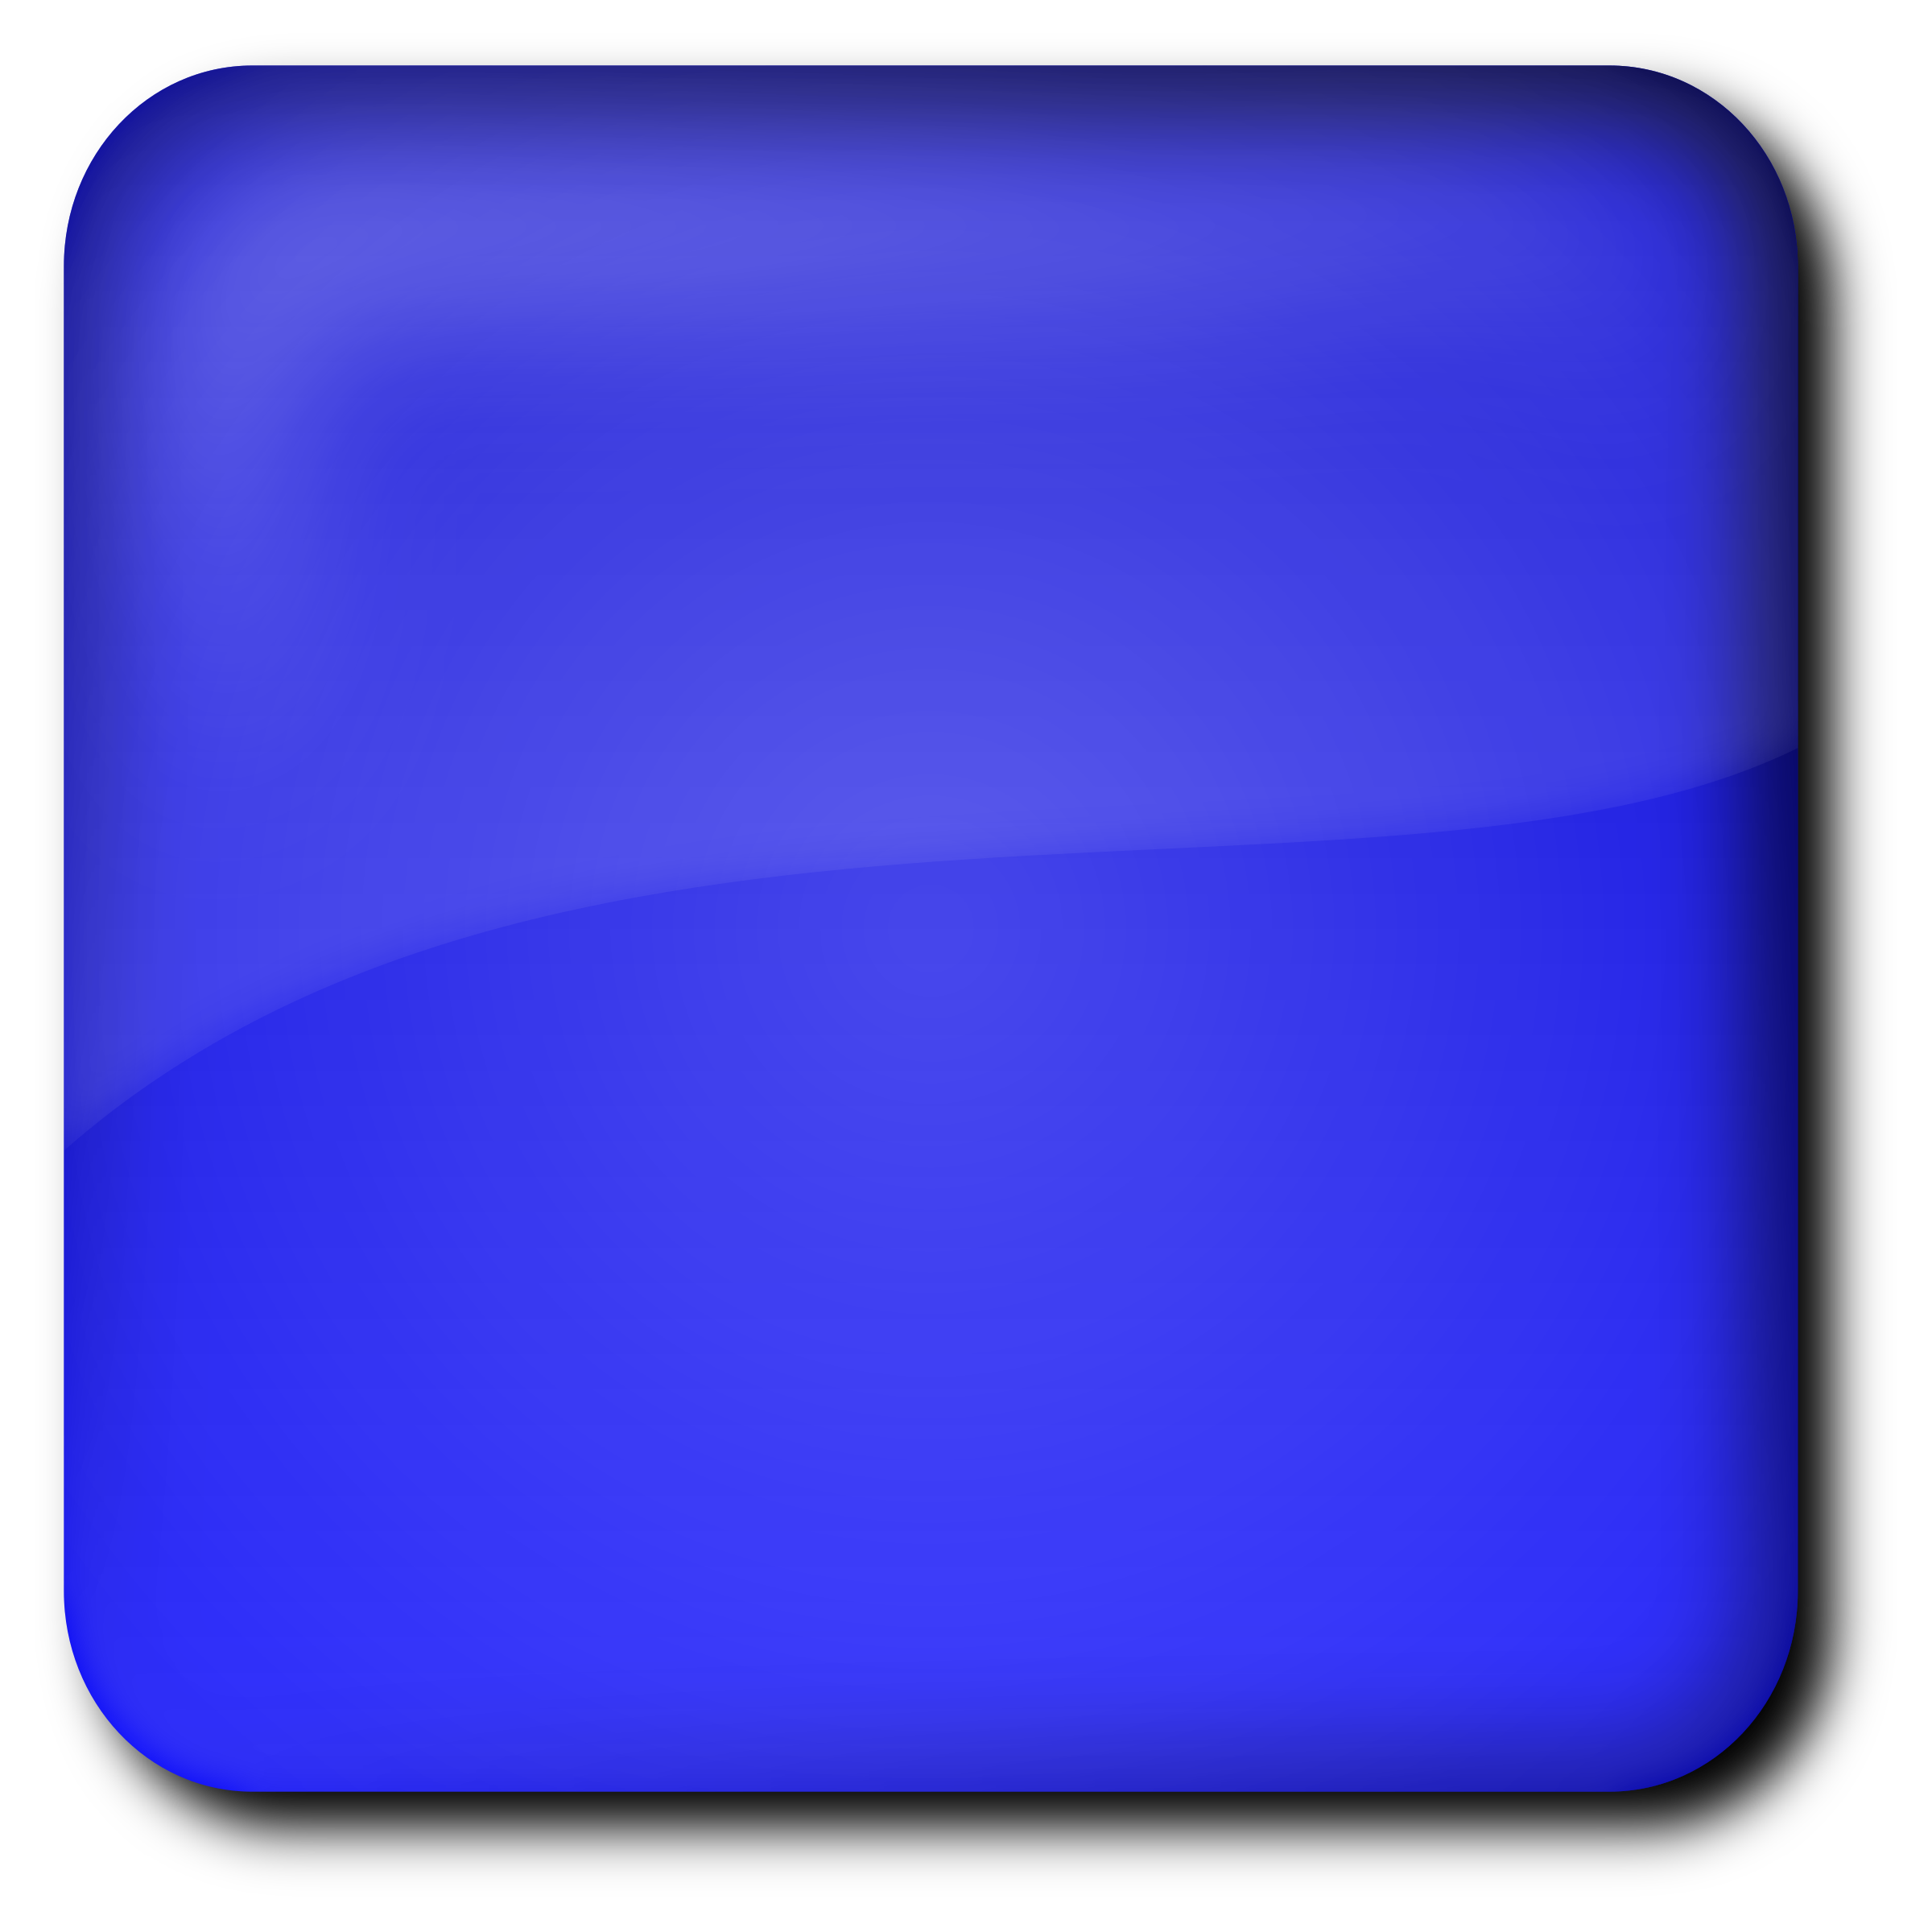 Square clipart colored Colored on clipart Art Blue